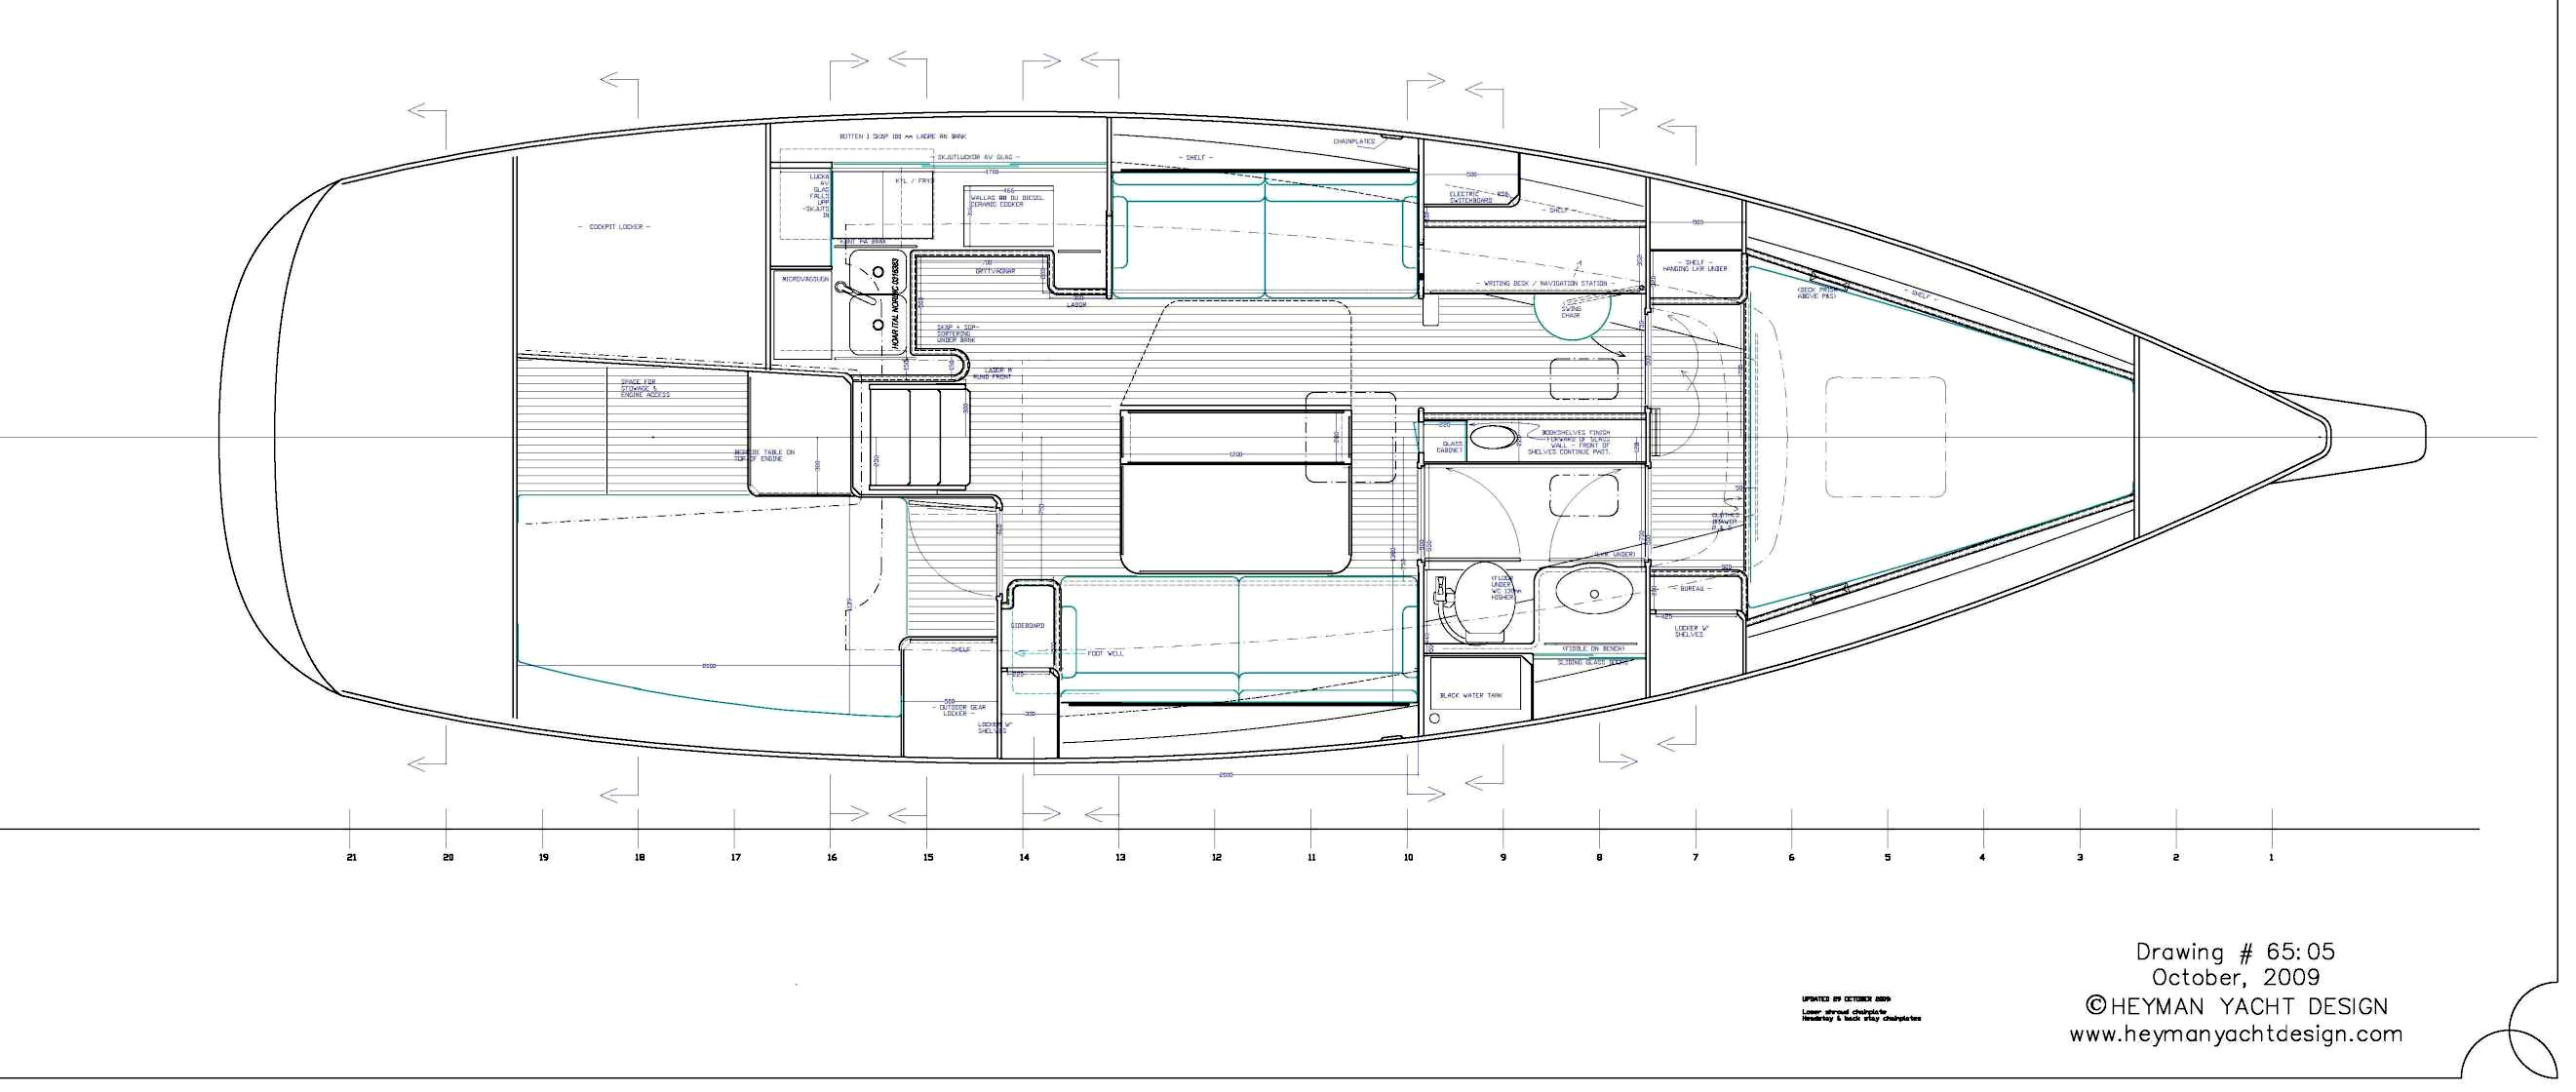 Celeste 36 alternative interior layout